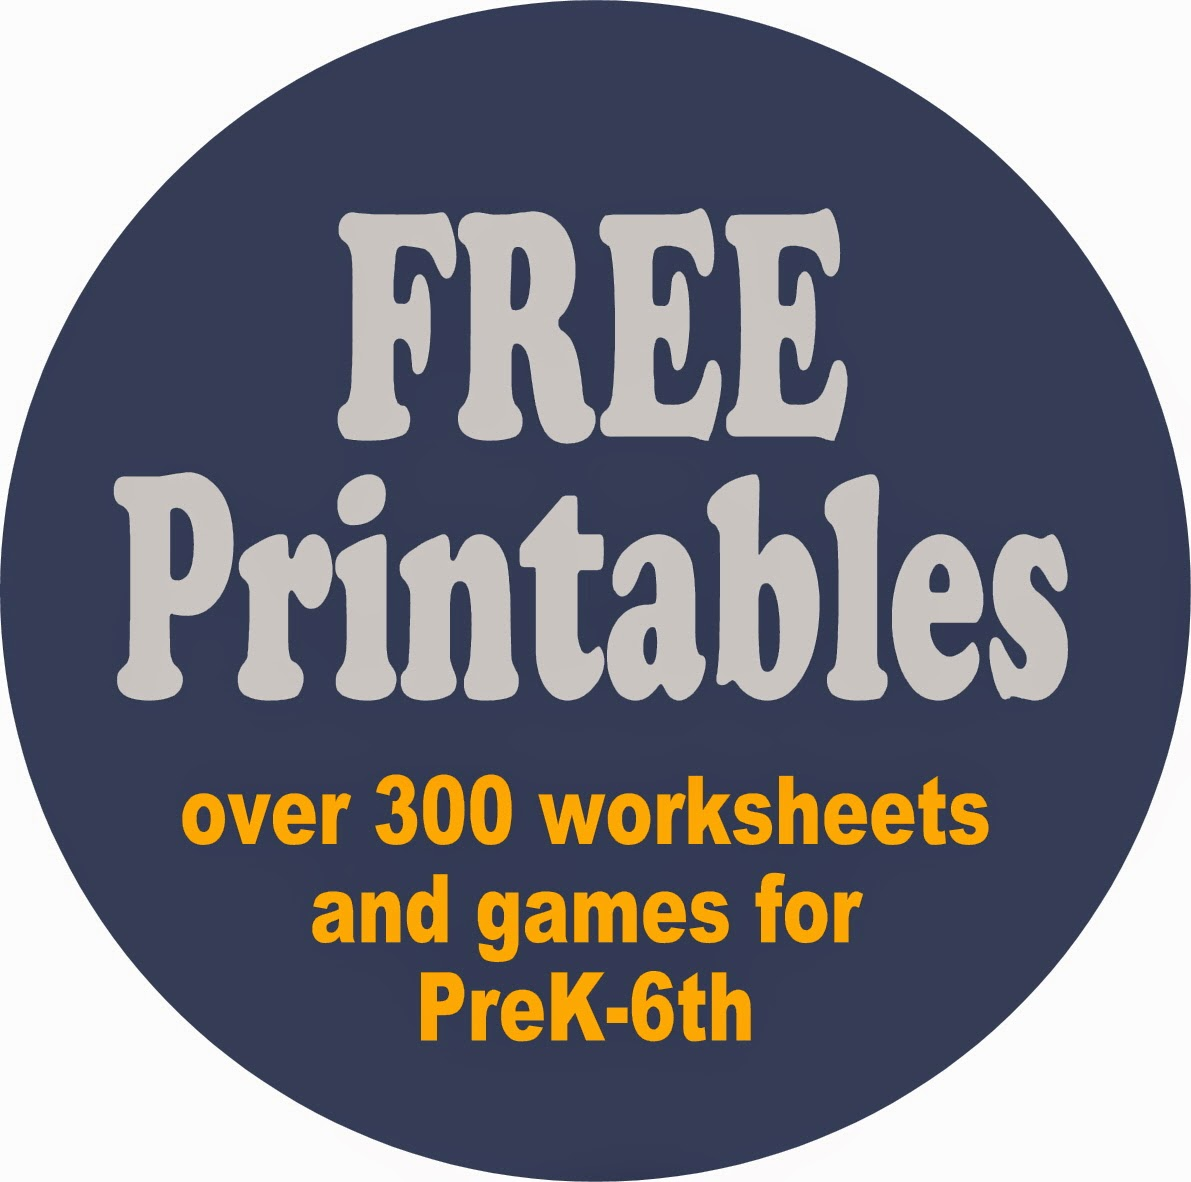 worksheet Free Preschool Worksheets Age 4 homeschool kindergarten worksheets abitlikethis for kids over 300 games lapbooks and units